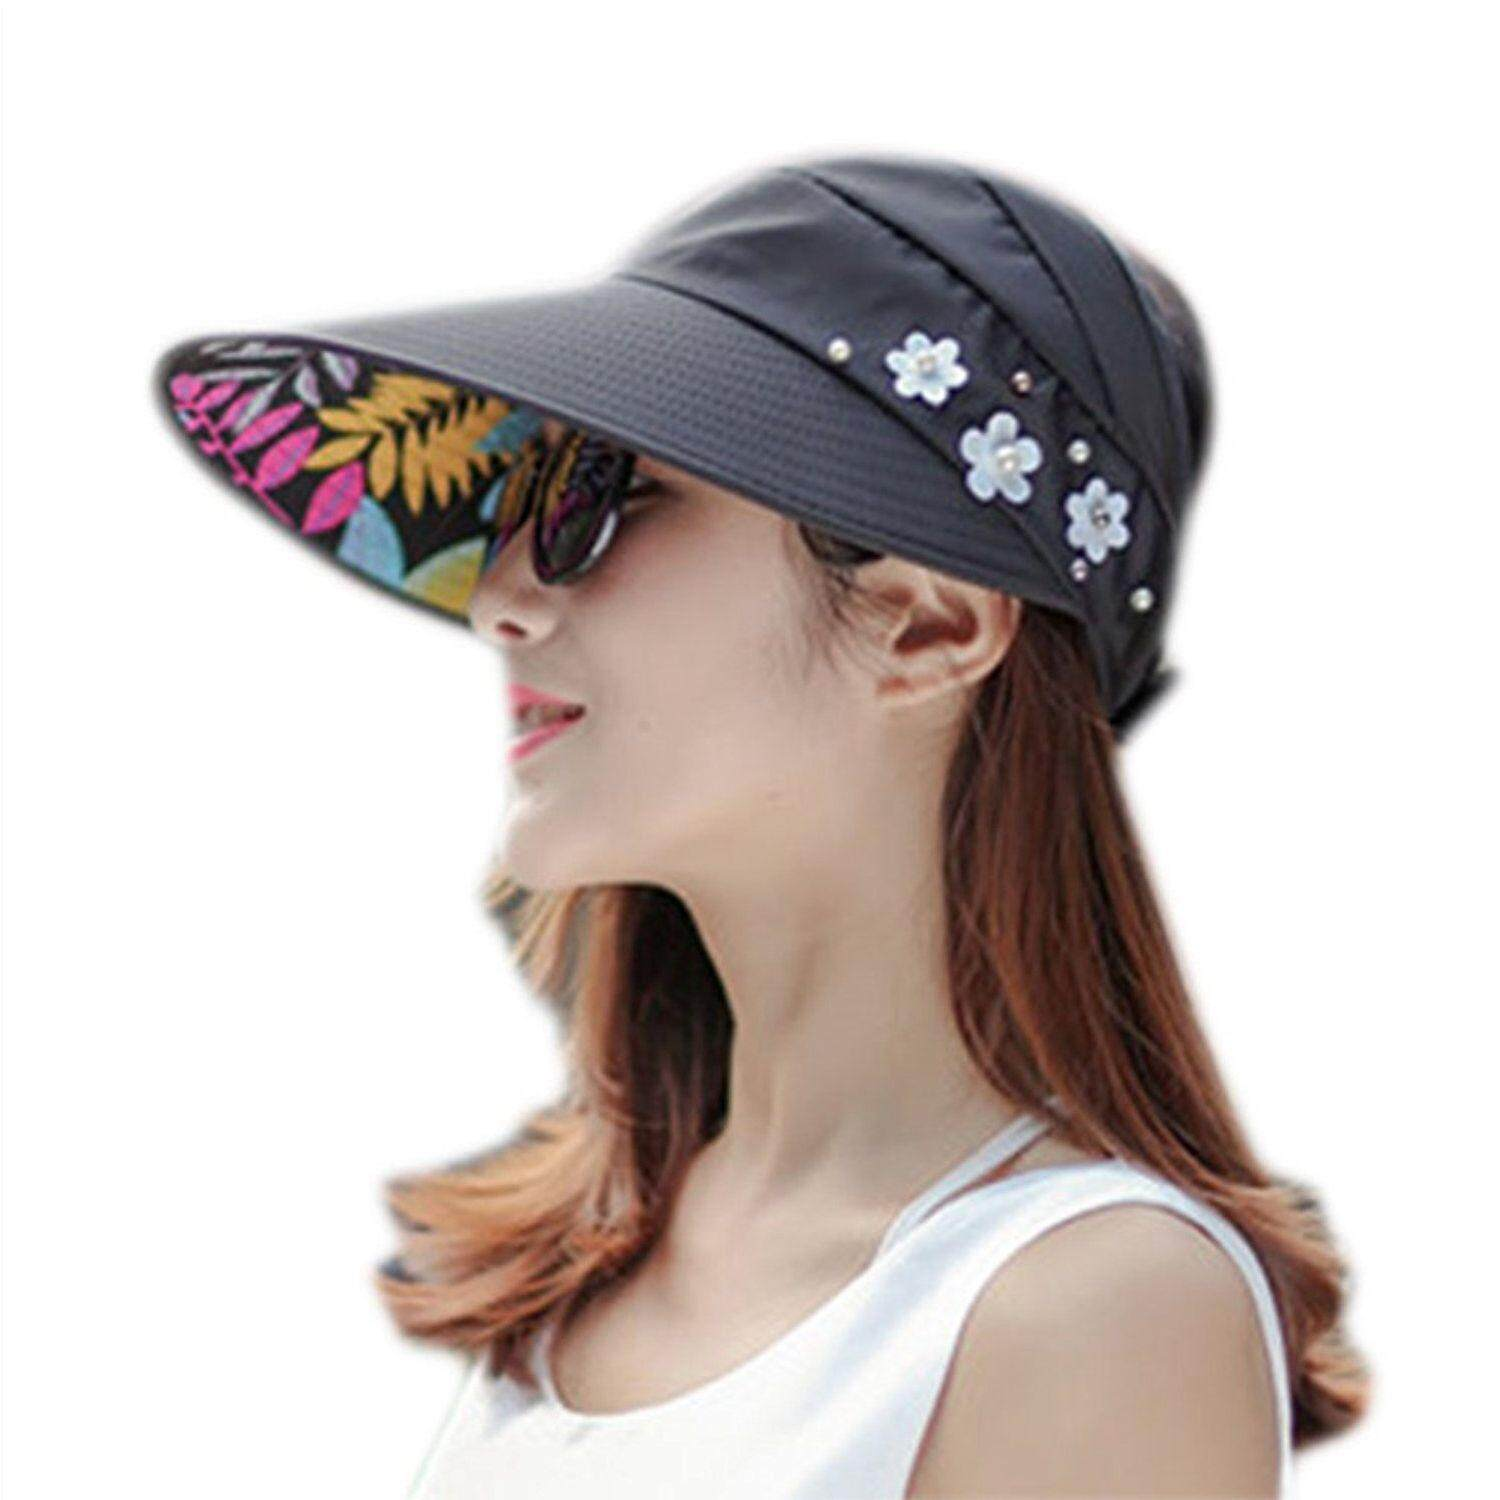 Sun Cap Ladies Foldable Beach Hat Wide Brim Plain Visor Hat Summer UV Sun  Protection Travel ef8fe47e5aca